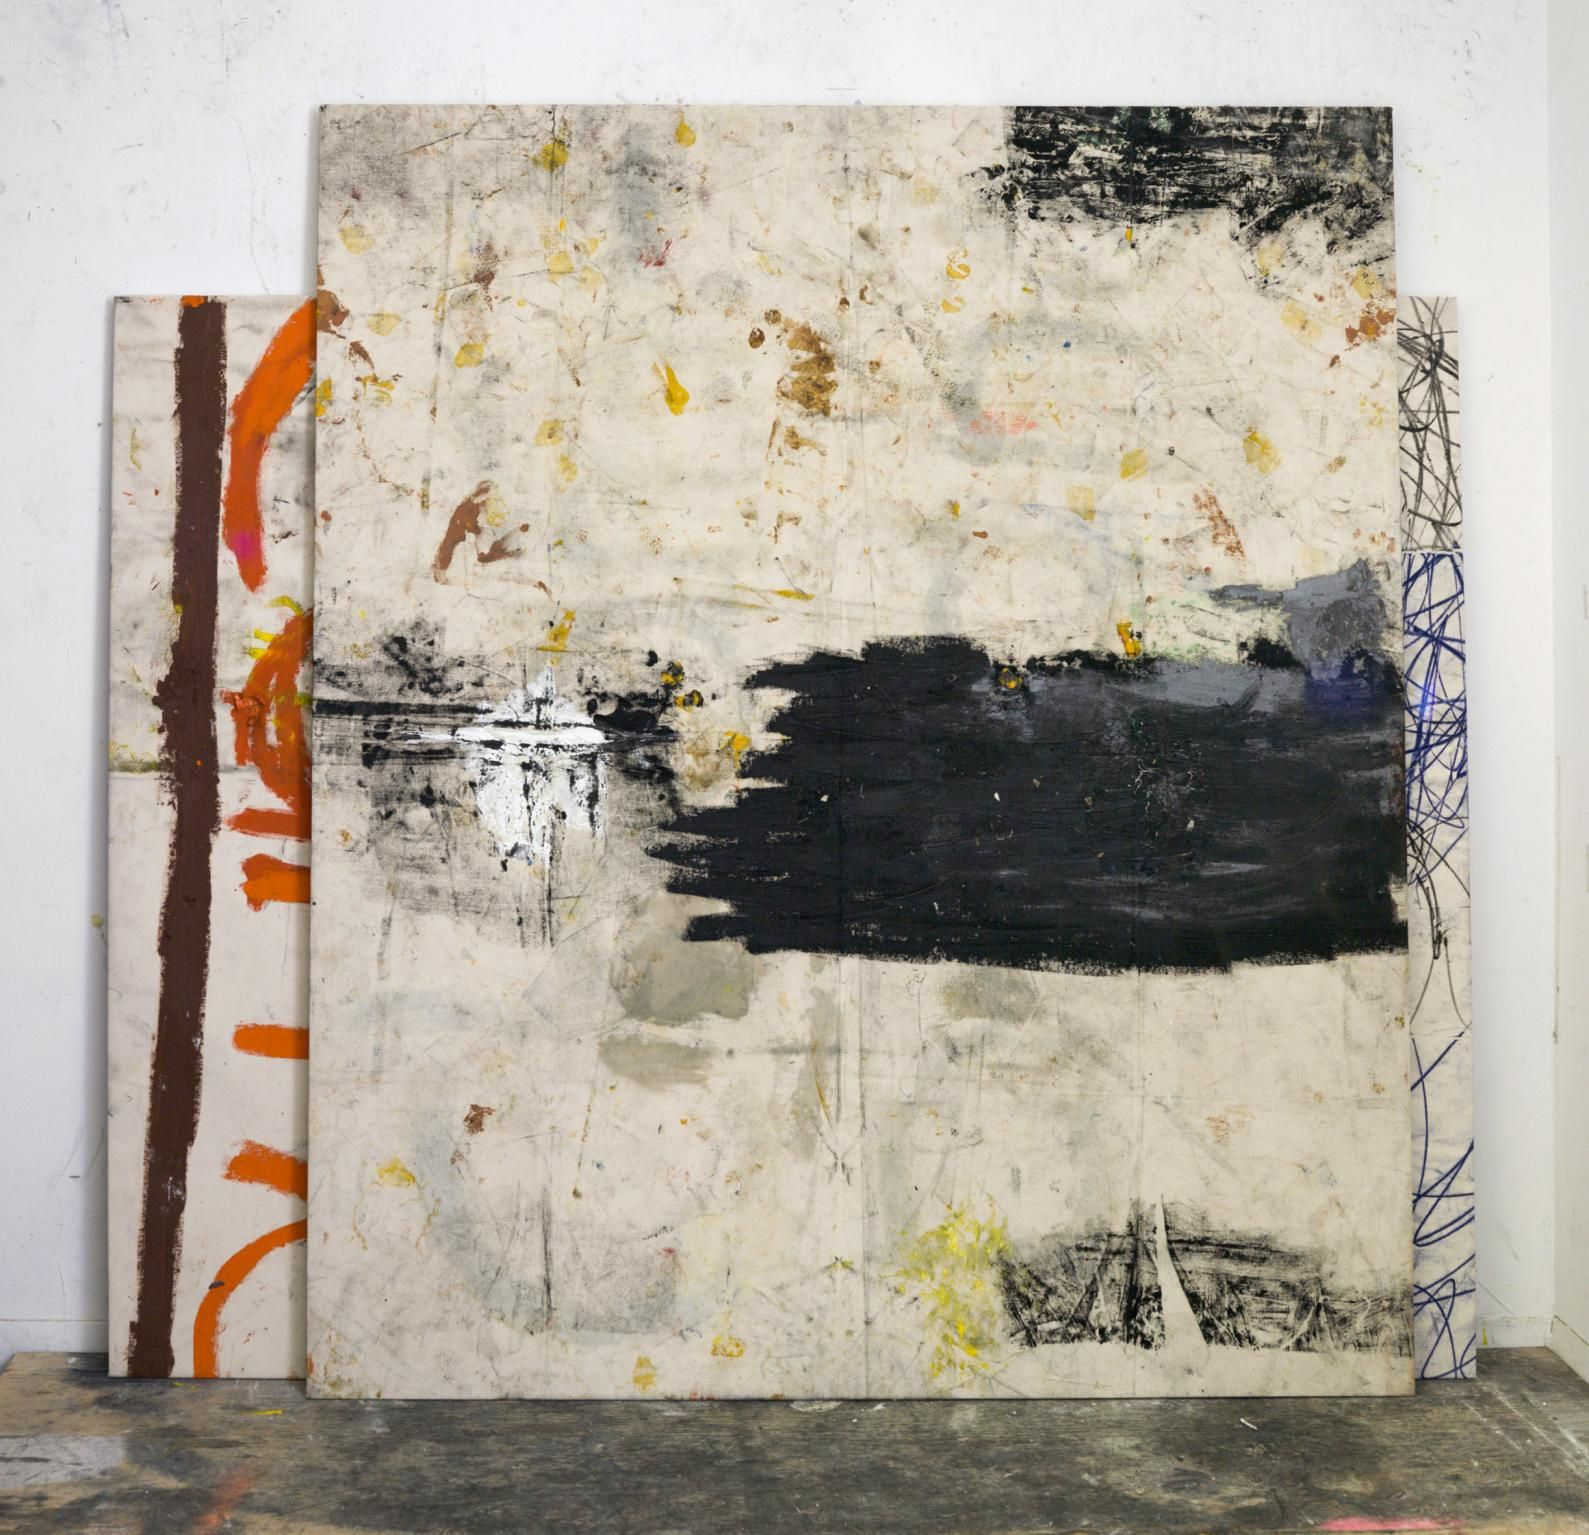 57aeb2fb5 Oscar Murillo - Untitled (stack paintings), oil, dirt and oilstick ...